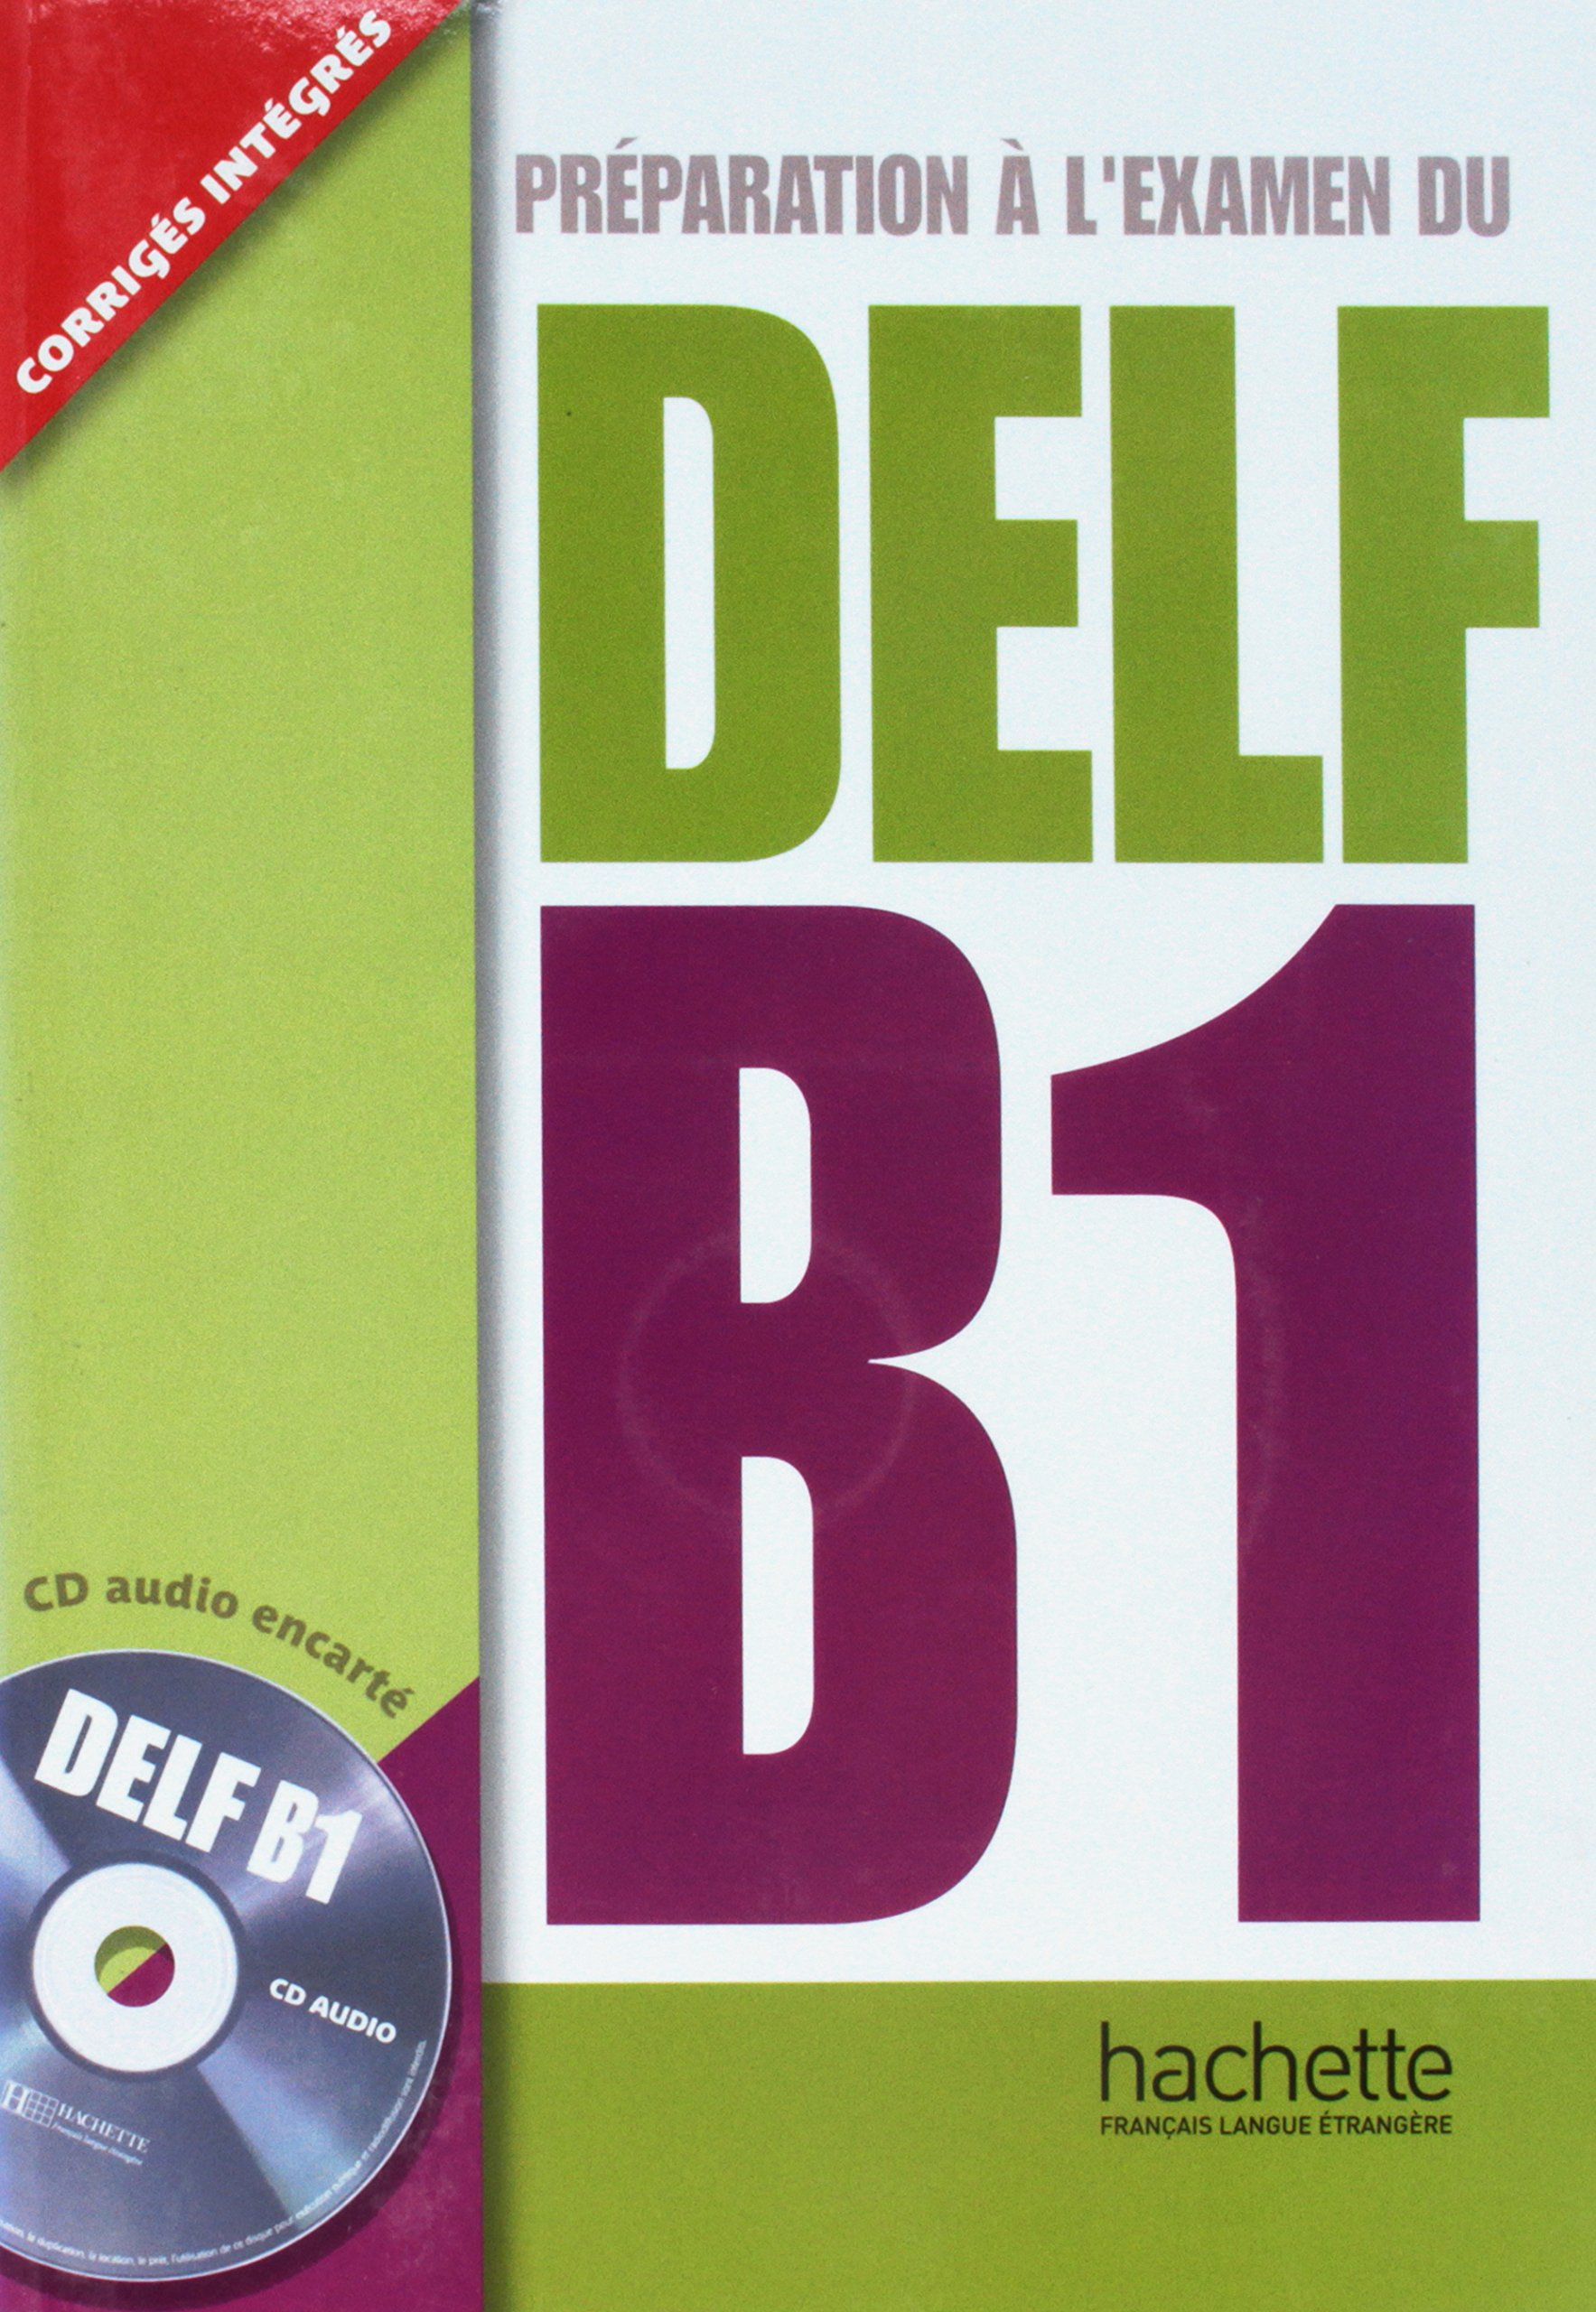 Preparation Examen Delf B1 plus CD audio (French Edition) (French) Paperback – January 1, 2008